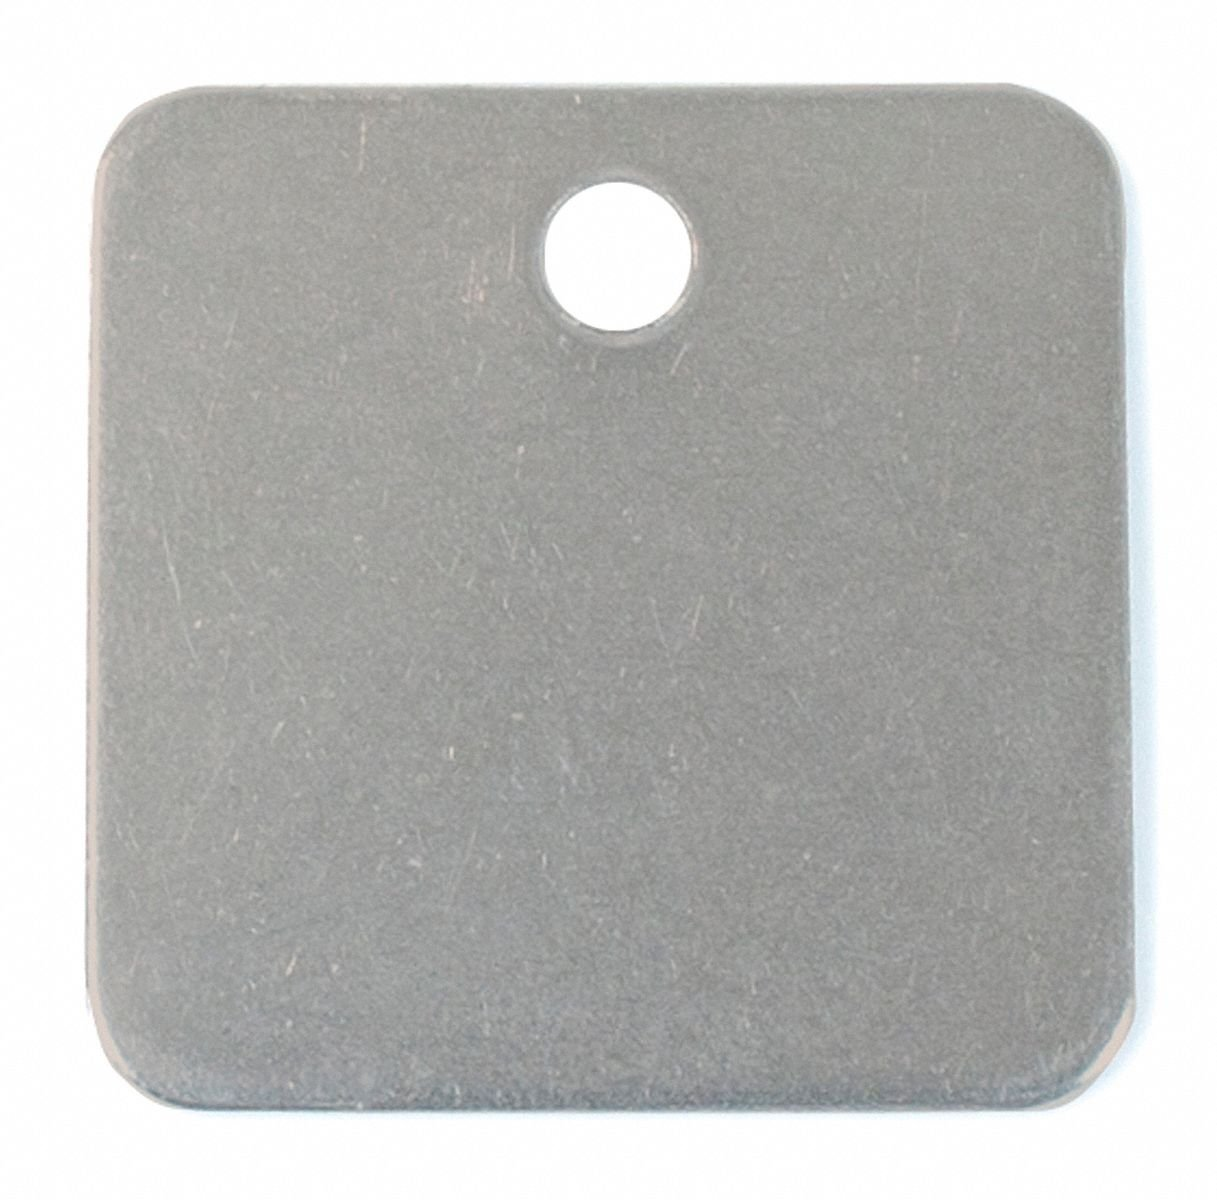 Steel Blank Tag, Stainless Steel, Square, 1-1/2'' Height, 10 PK